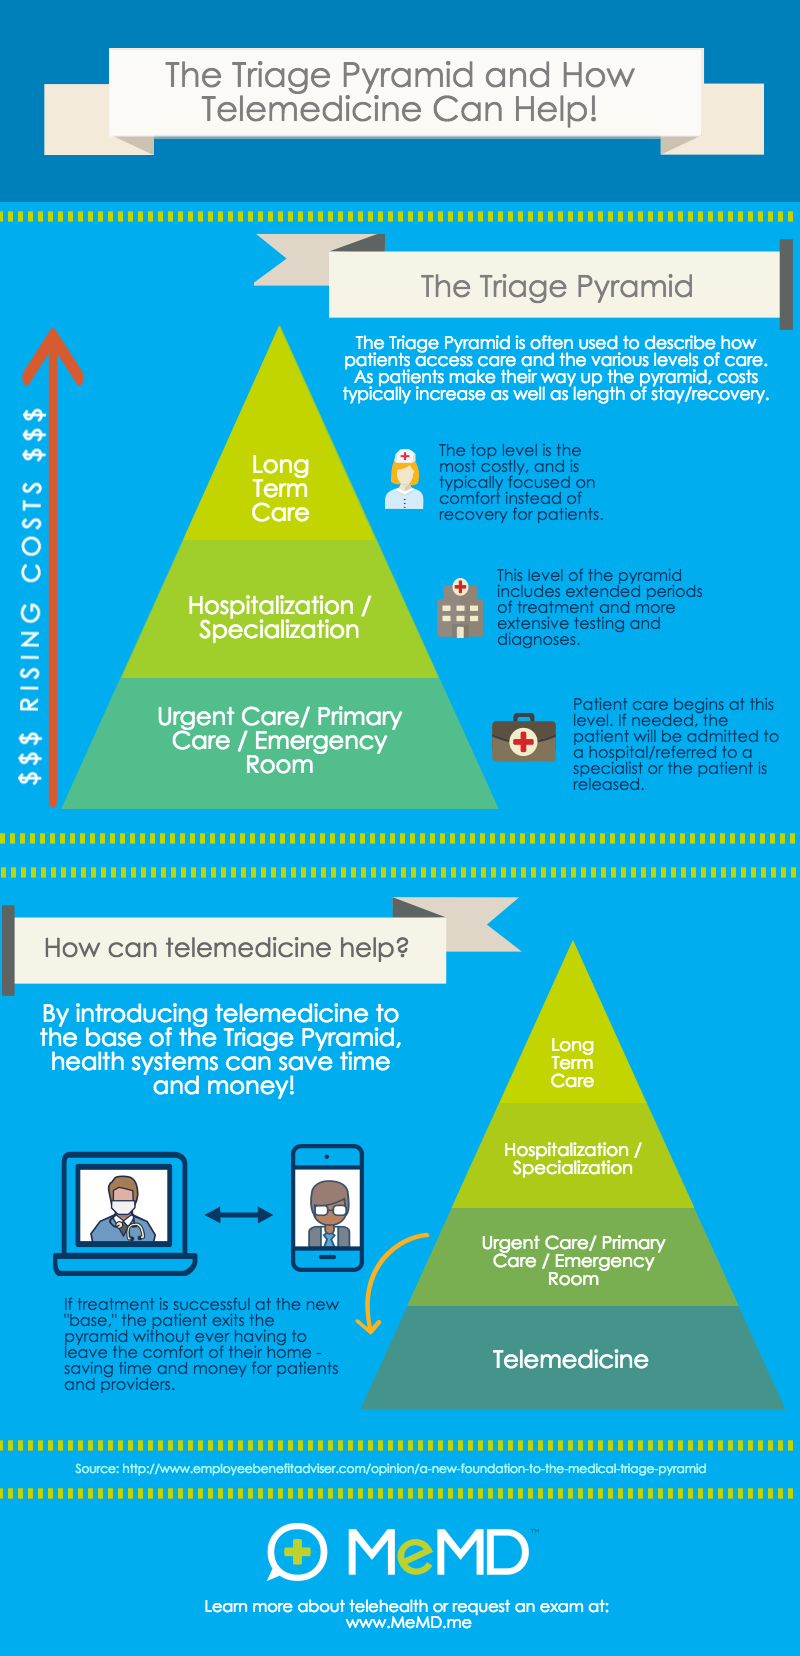 blog-memd-infographic-triage-pyramid-telehealth